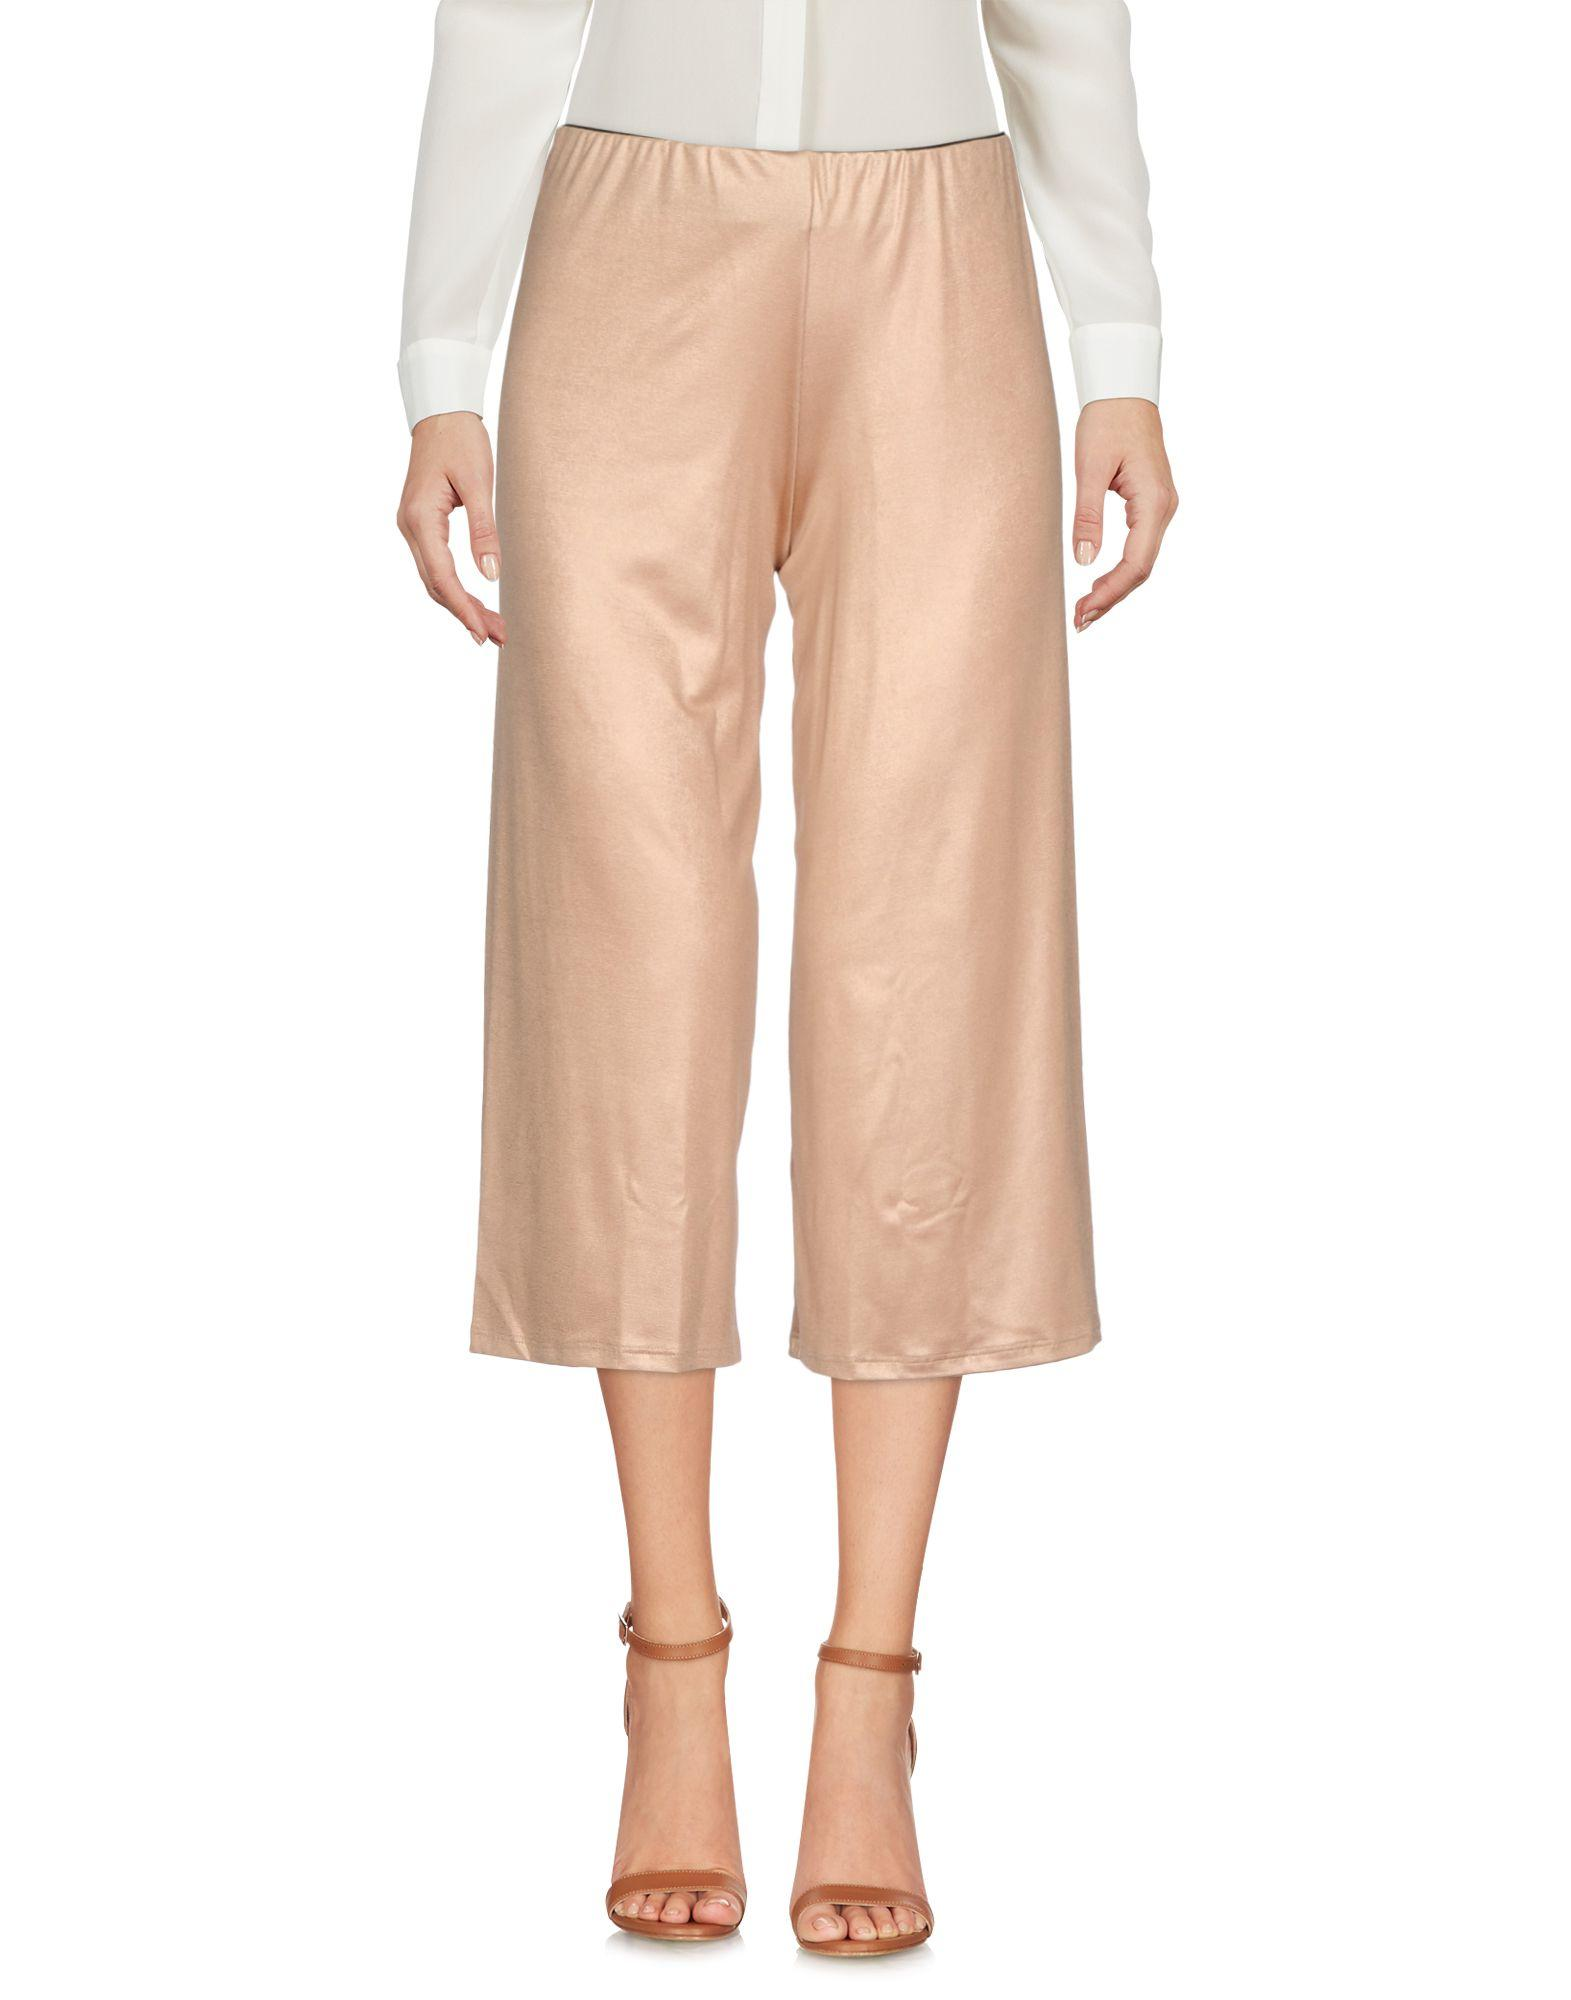 Pierre Mantoux 3/4-length Shorts In Camel